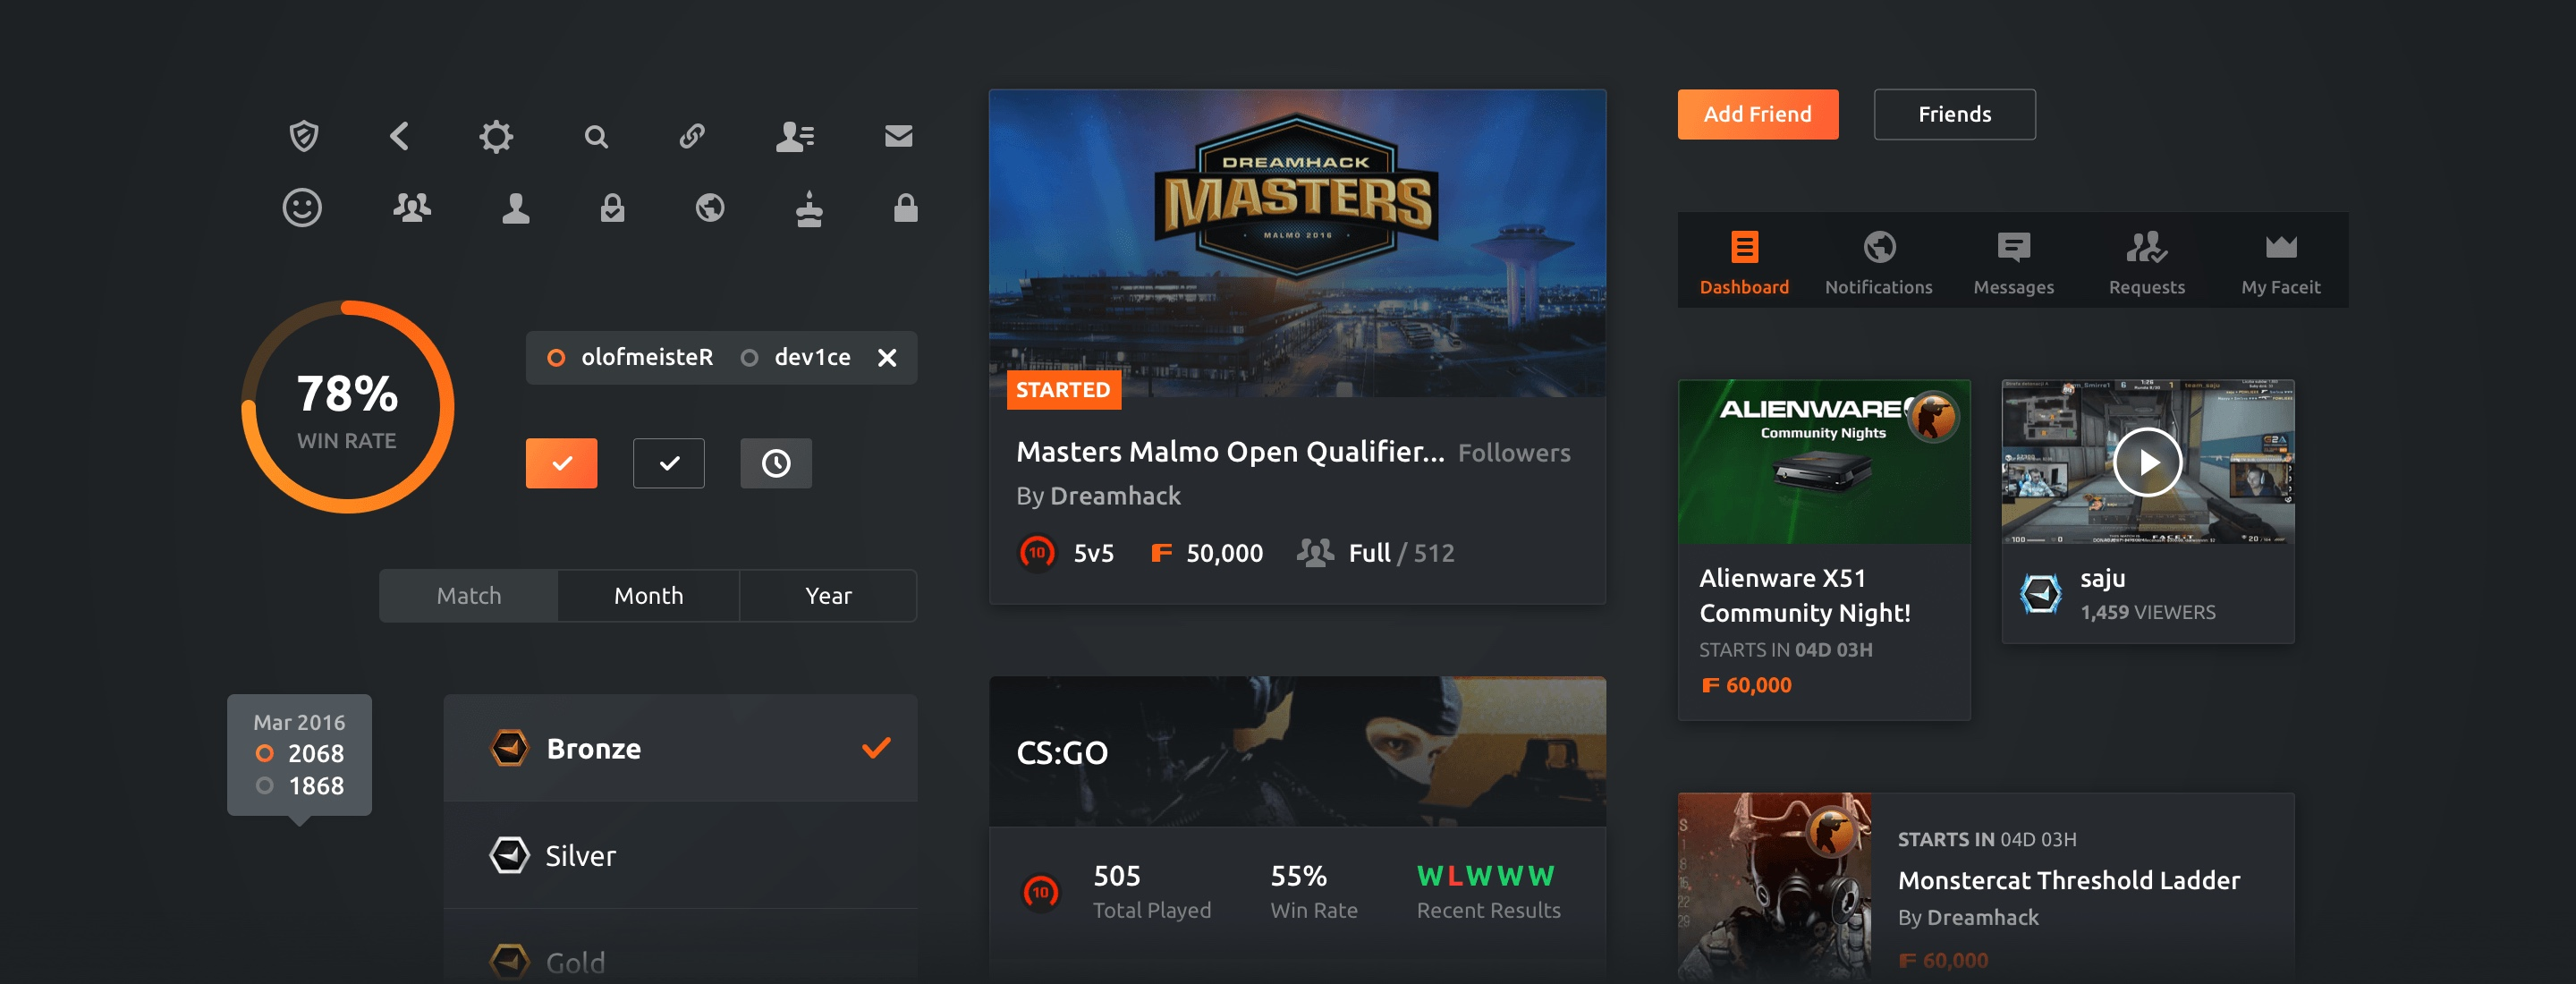 FACEIT • iOS and Android App design | by Pixelmatters